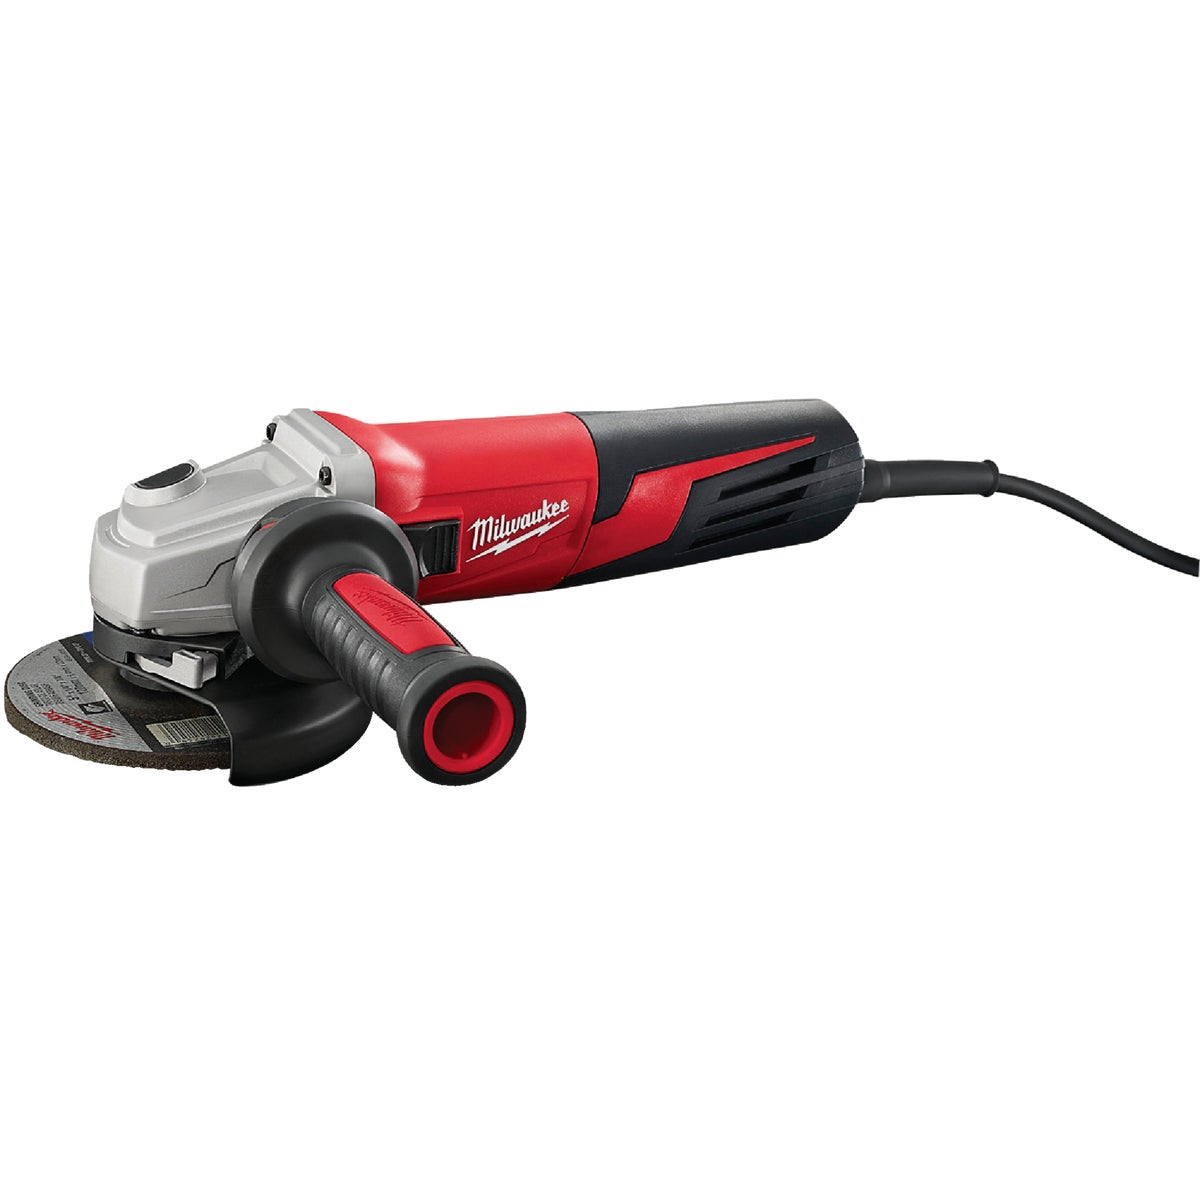 "13A 5"" ANGLE GRINDER - 6117-33D by Milwaukee Elec Tool"